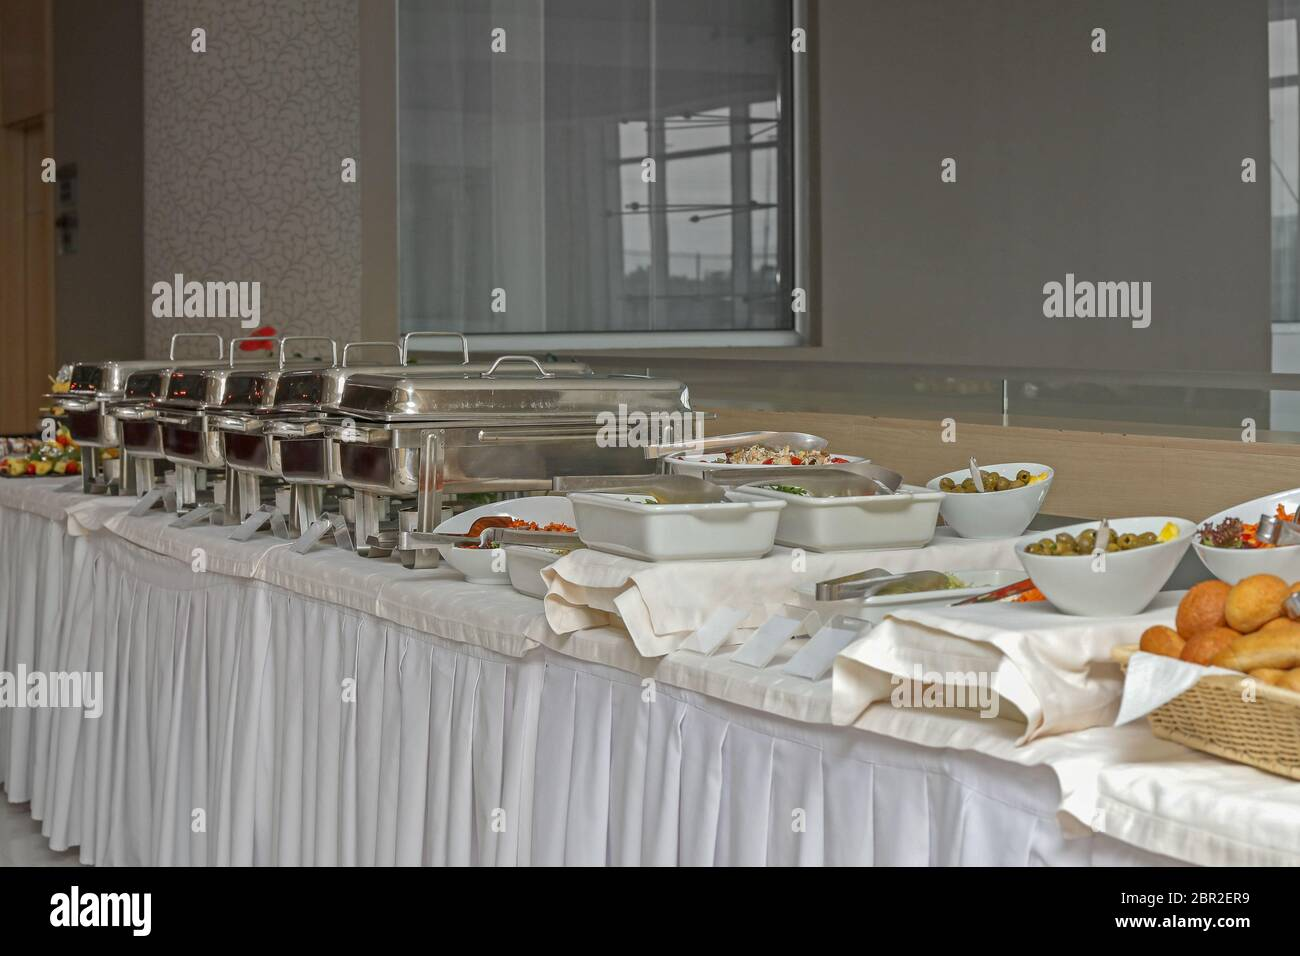 Served Food At Big Long Buffet Table Stock Photo Alamy